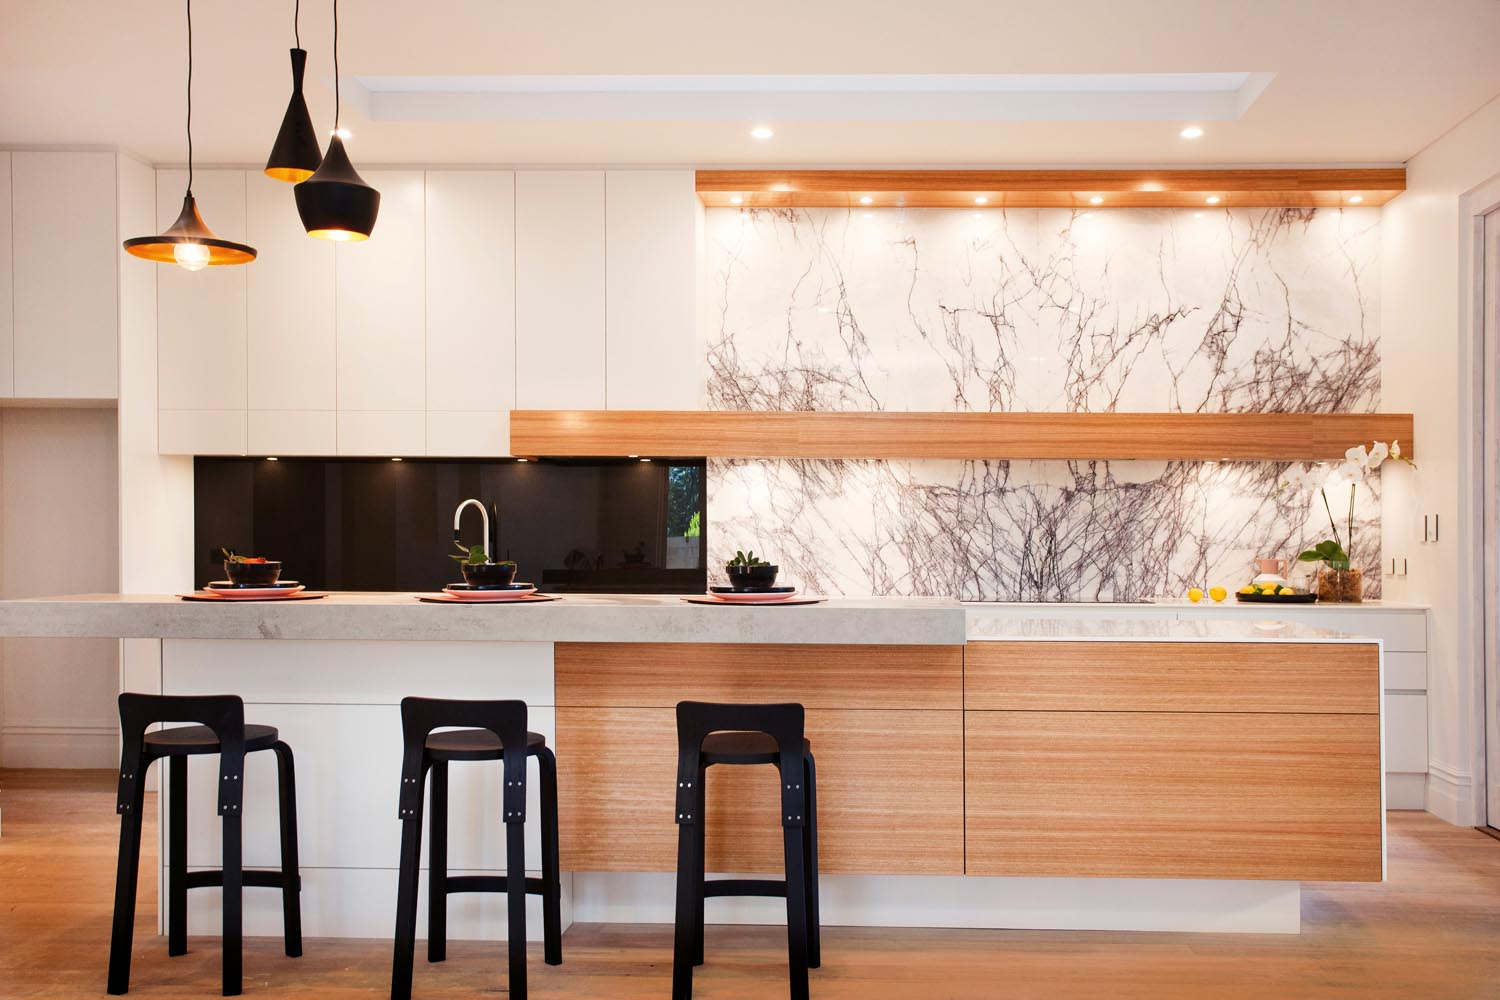 """""""Elegant beauty"""": a bright and airy kitchen design - kitchen overview"""